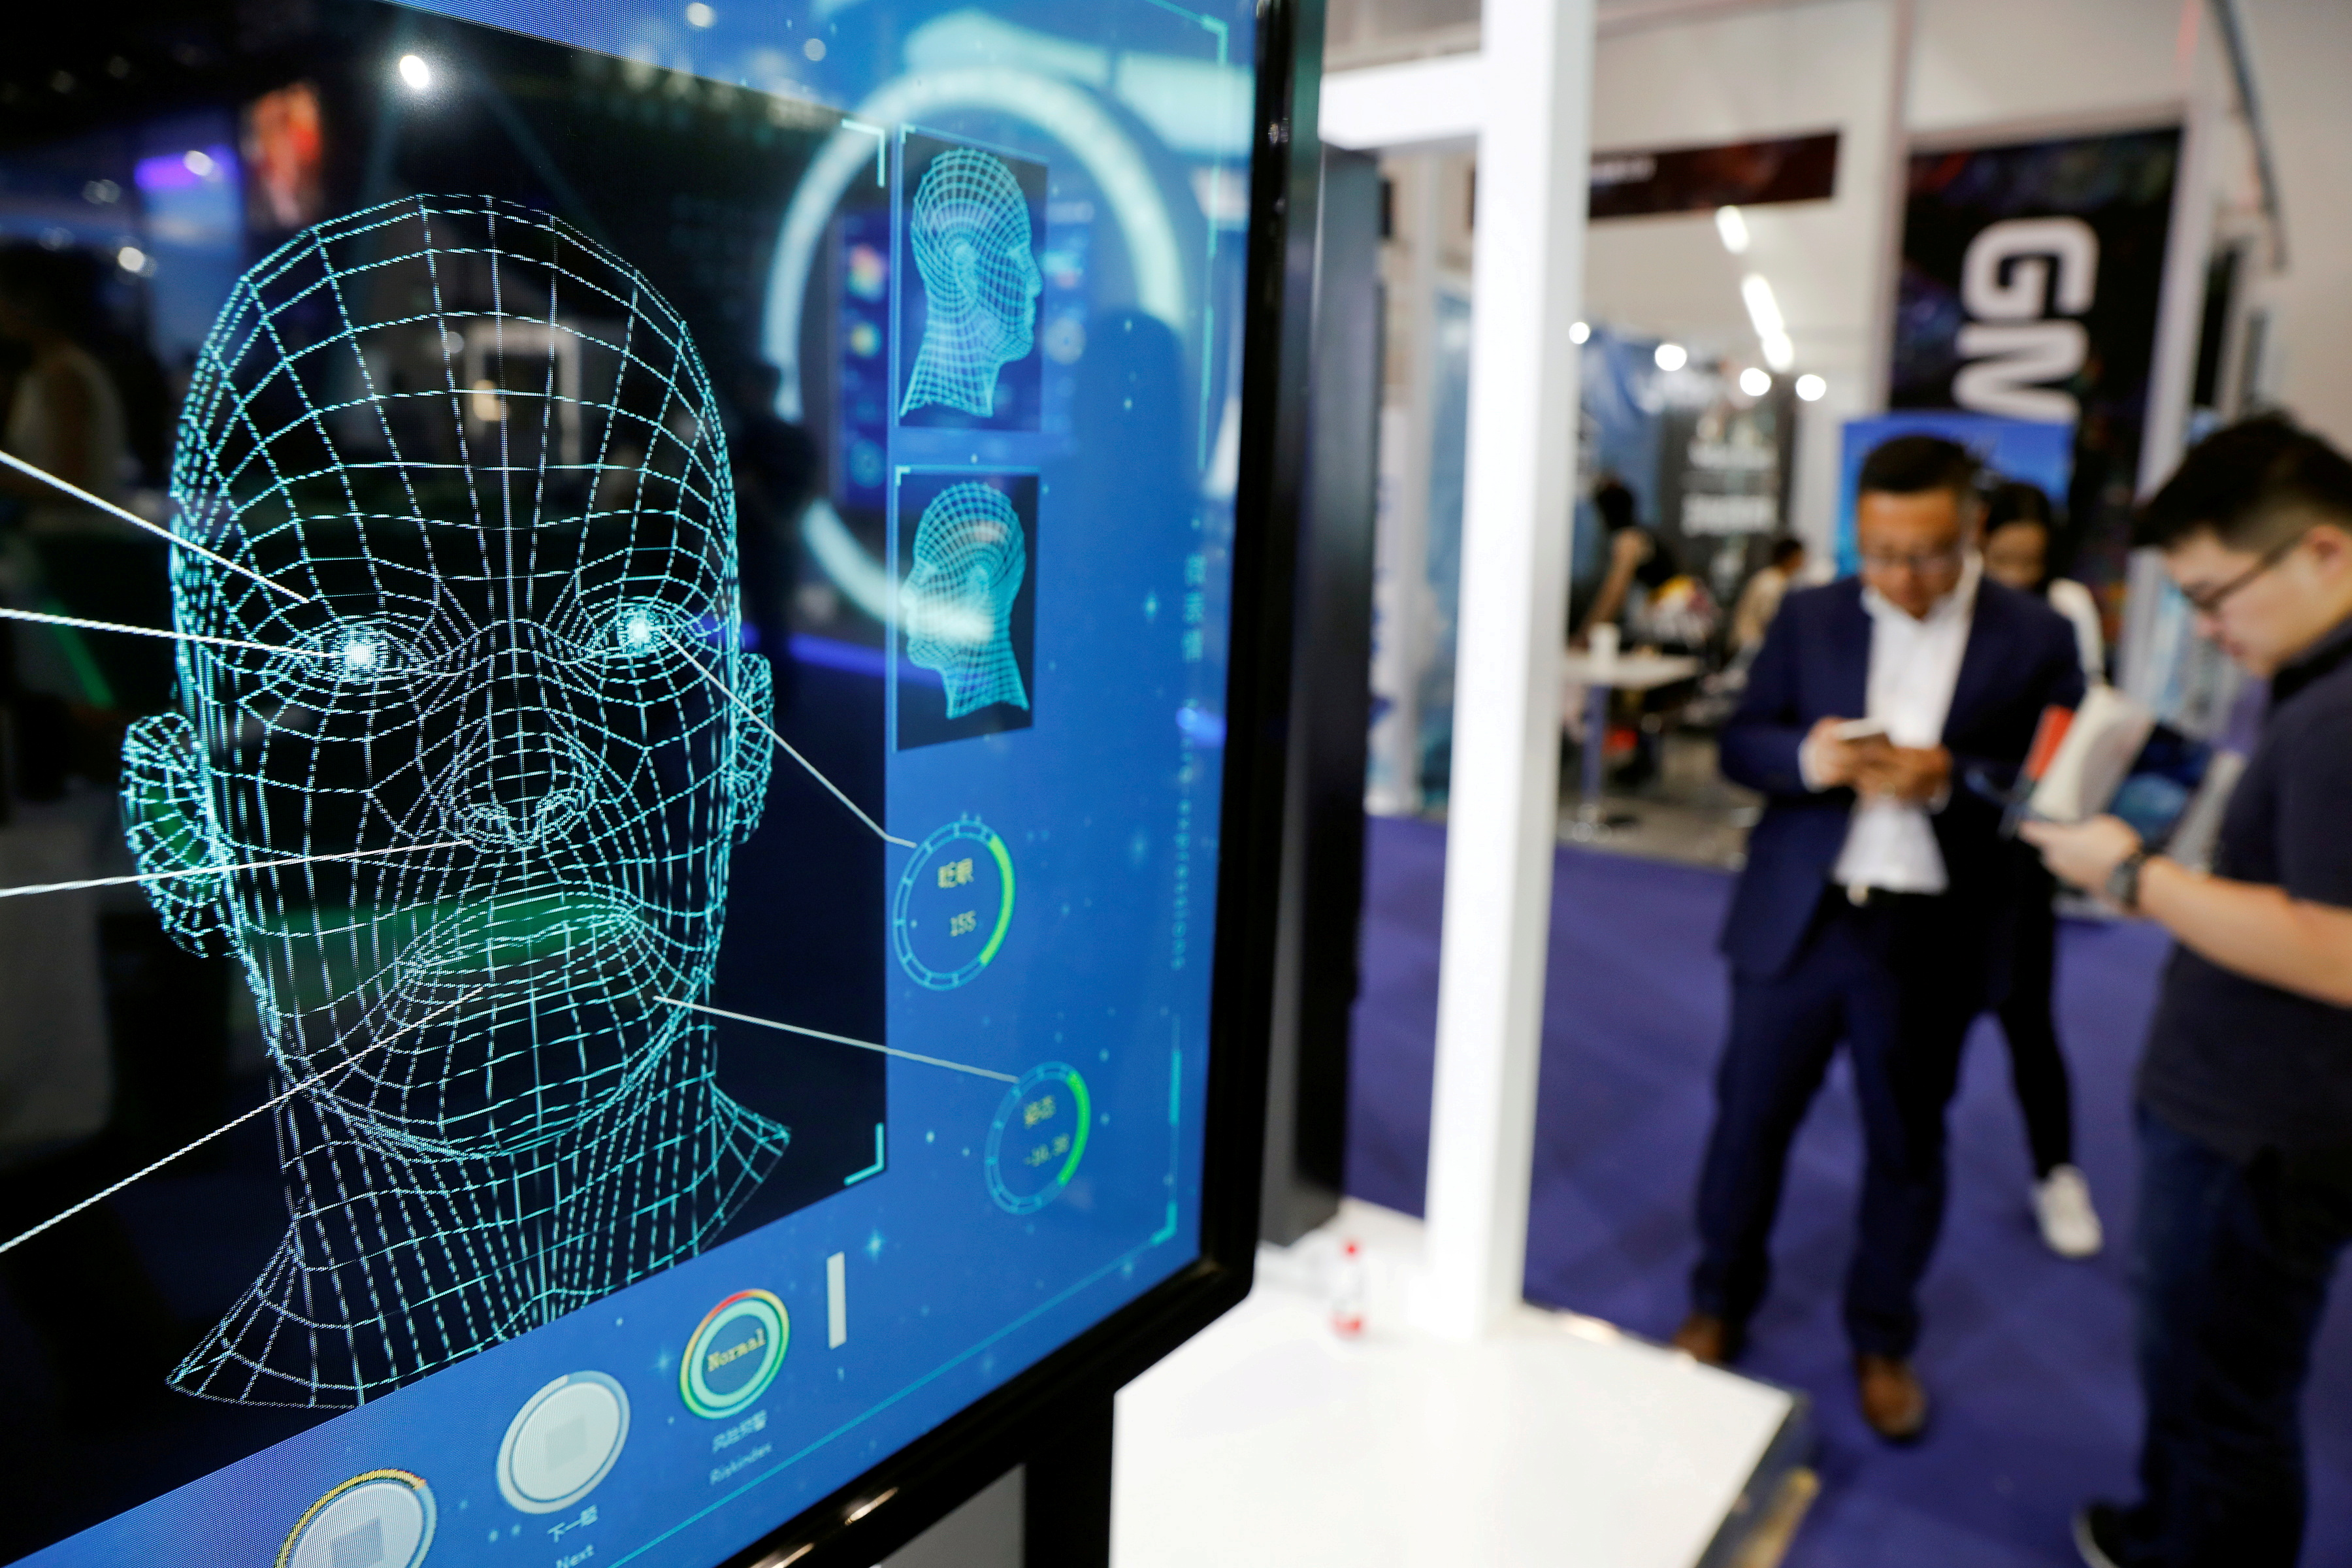 Investor group call for ethical approach to facial recognition